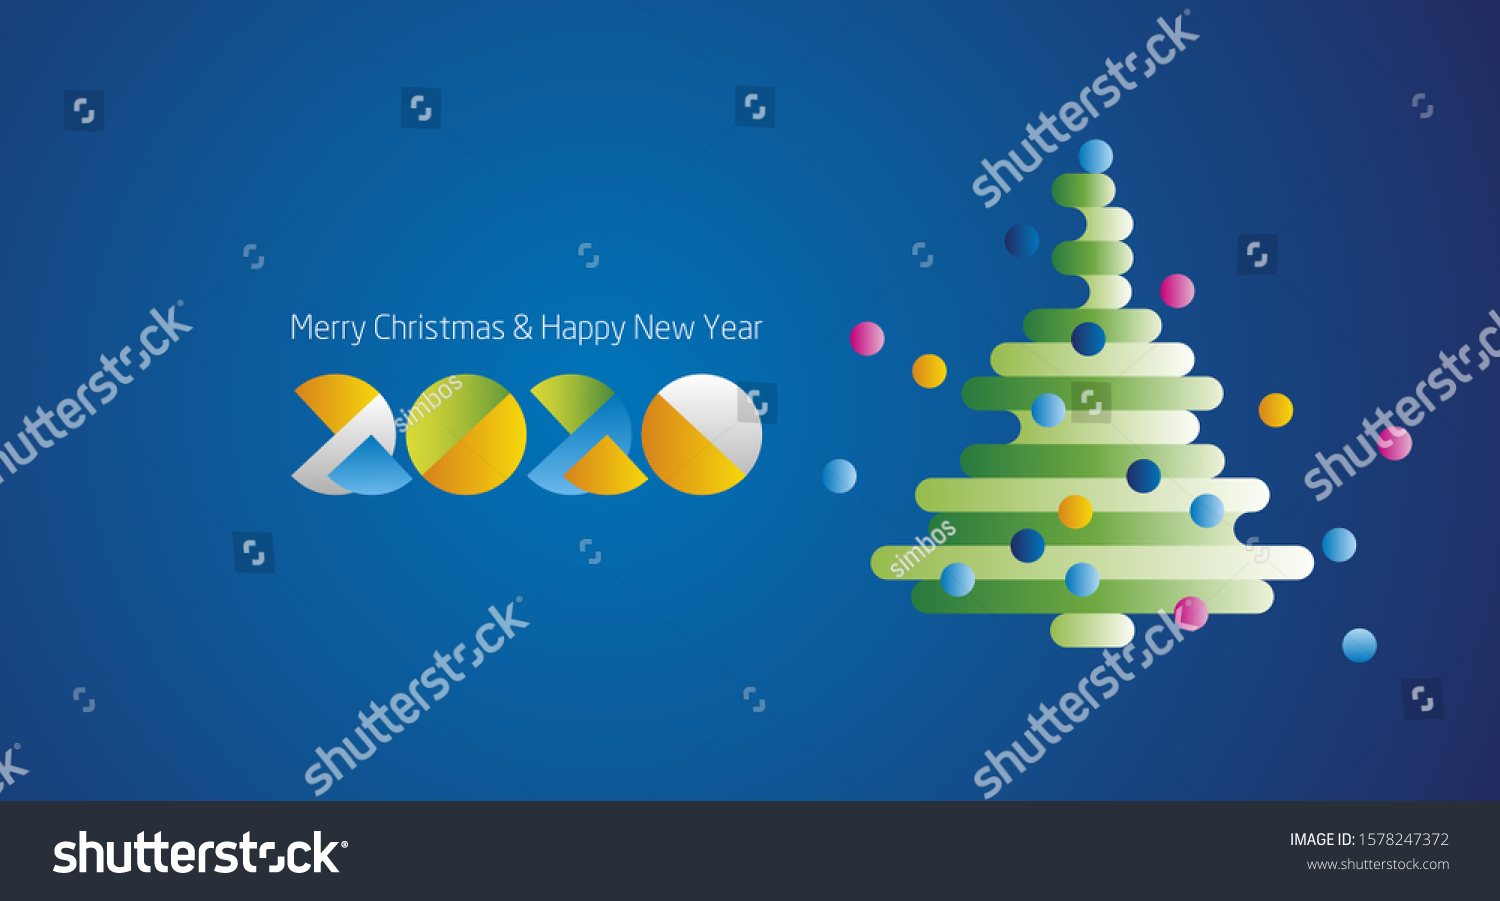 Merry Christmas And Happy New Year Green And Cream 2020 Merry Christmas Happy New Year 2020 Stock Vector (Royalty Free